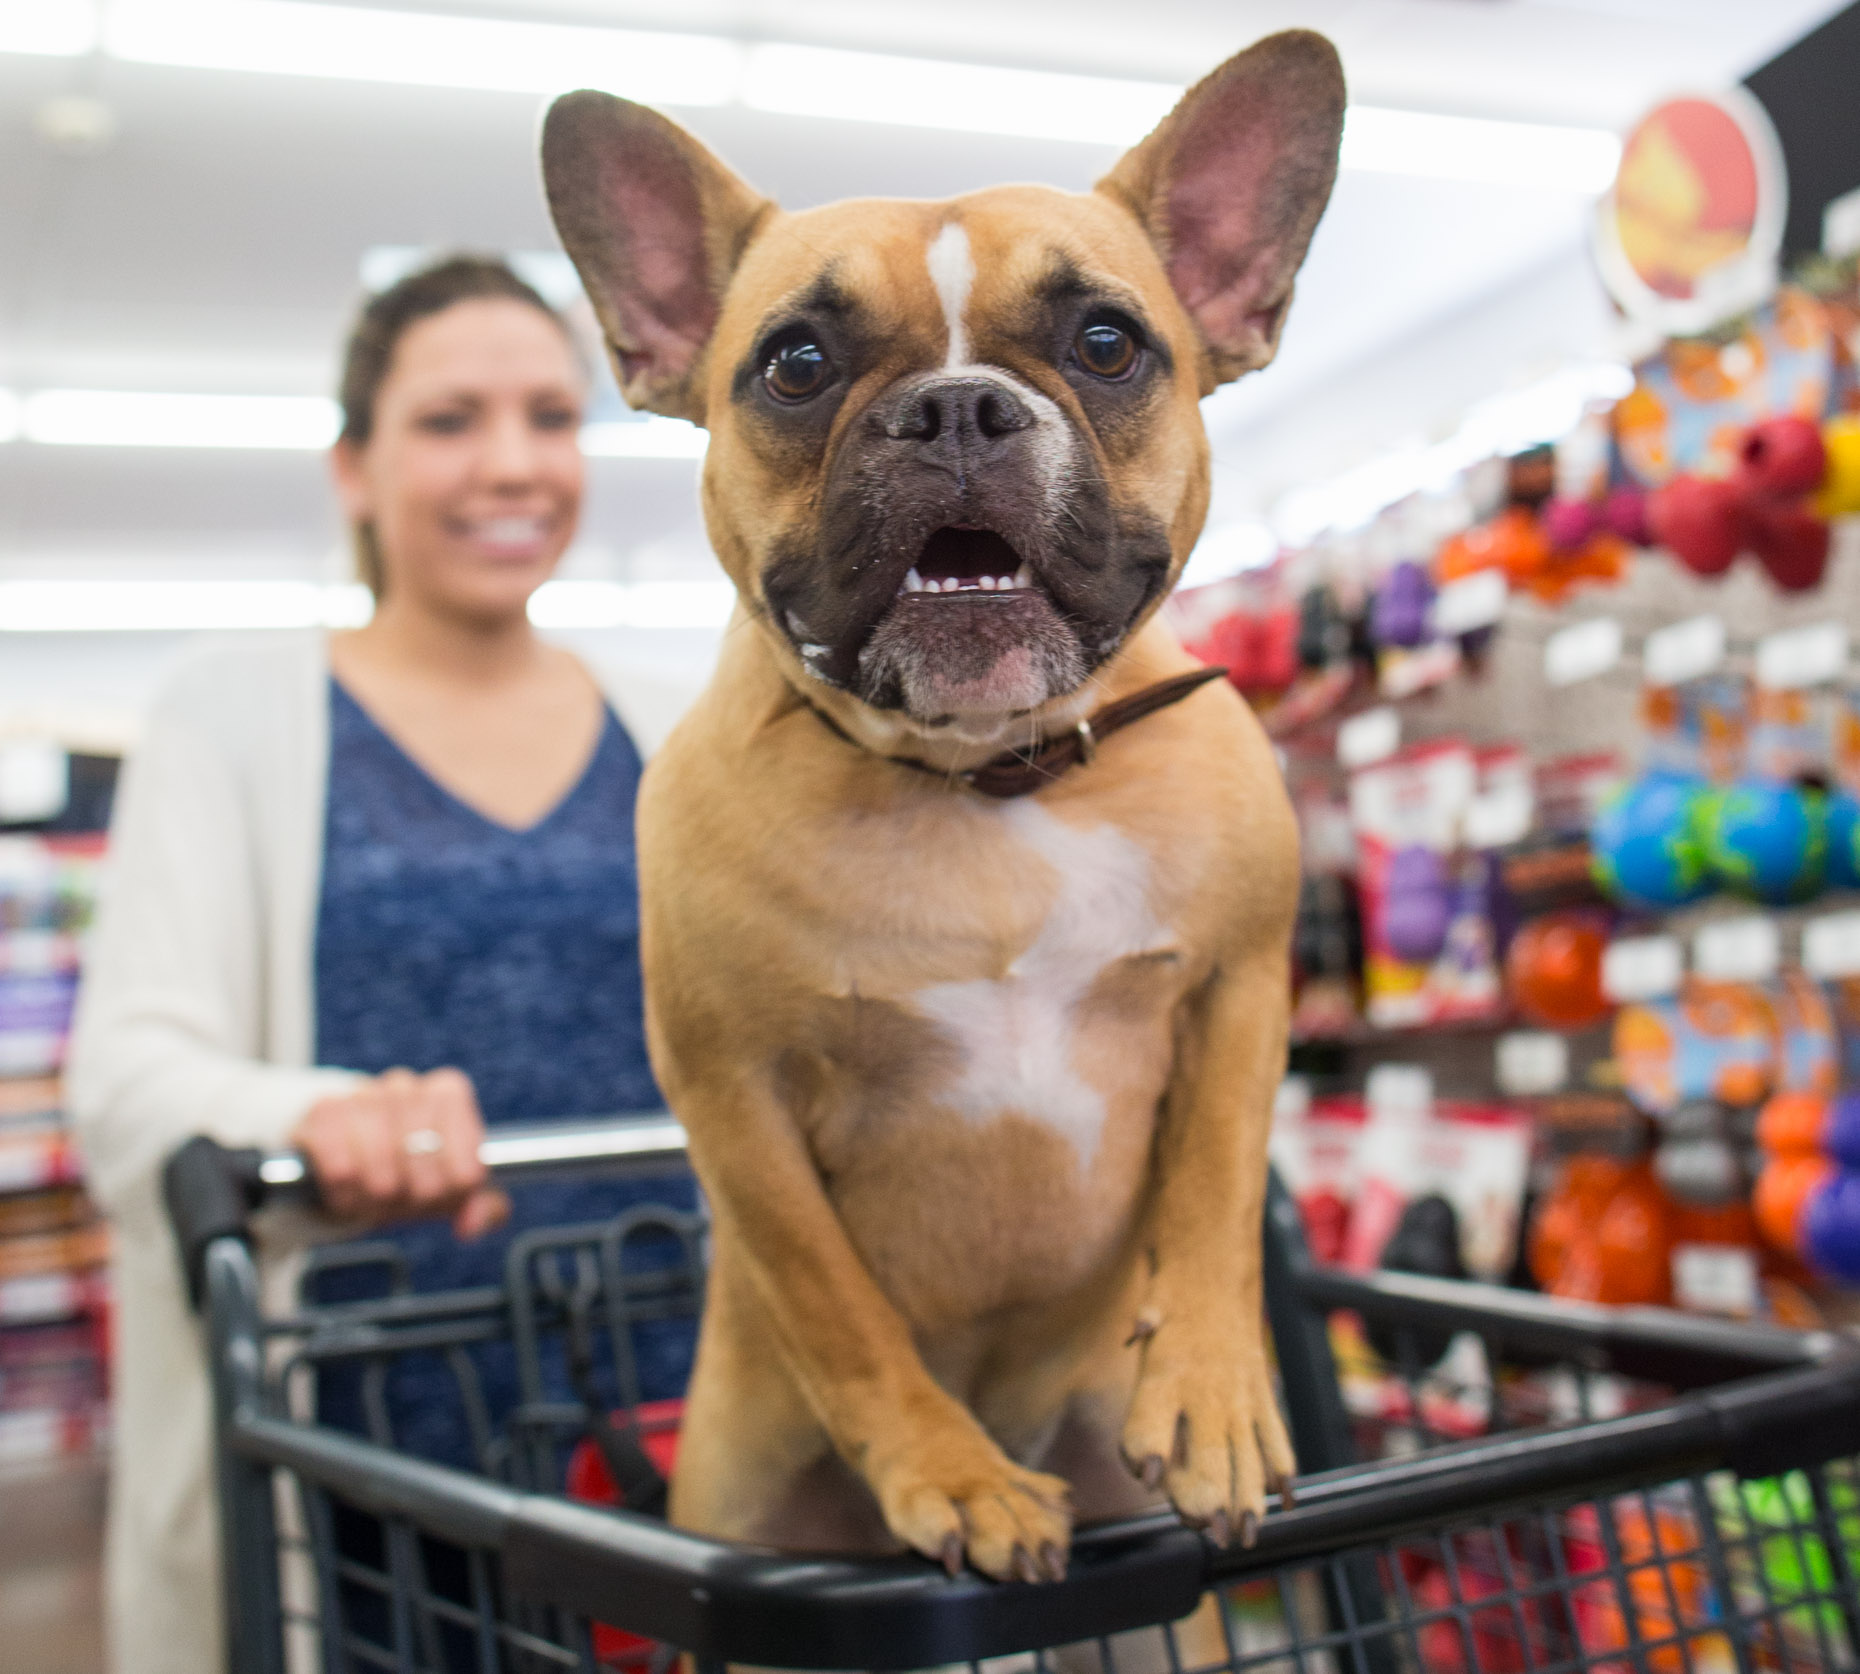 French-bulldog-smiling-in-shopping-cart